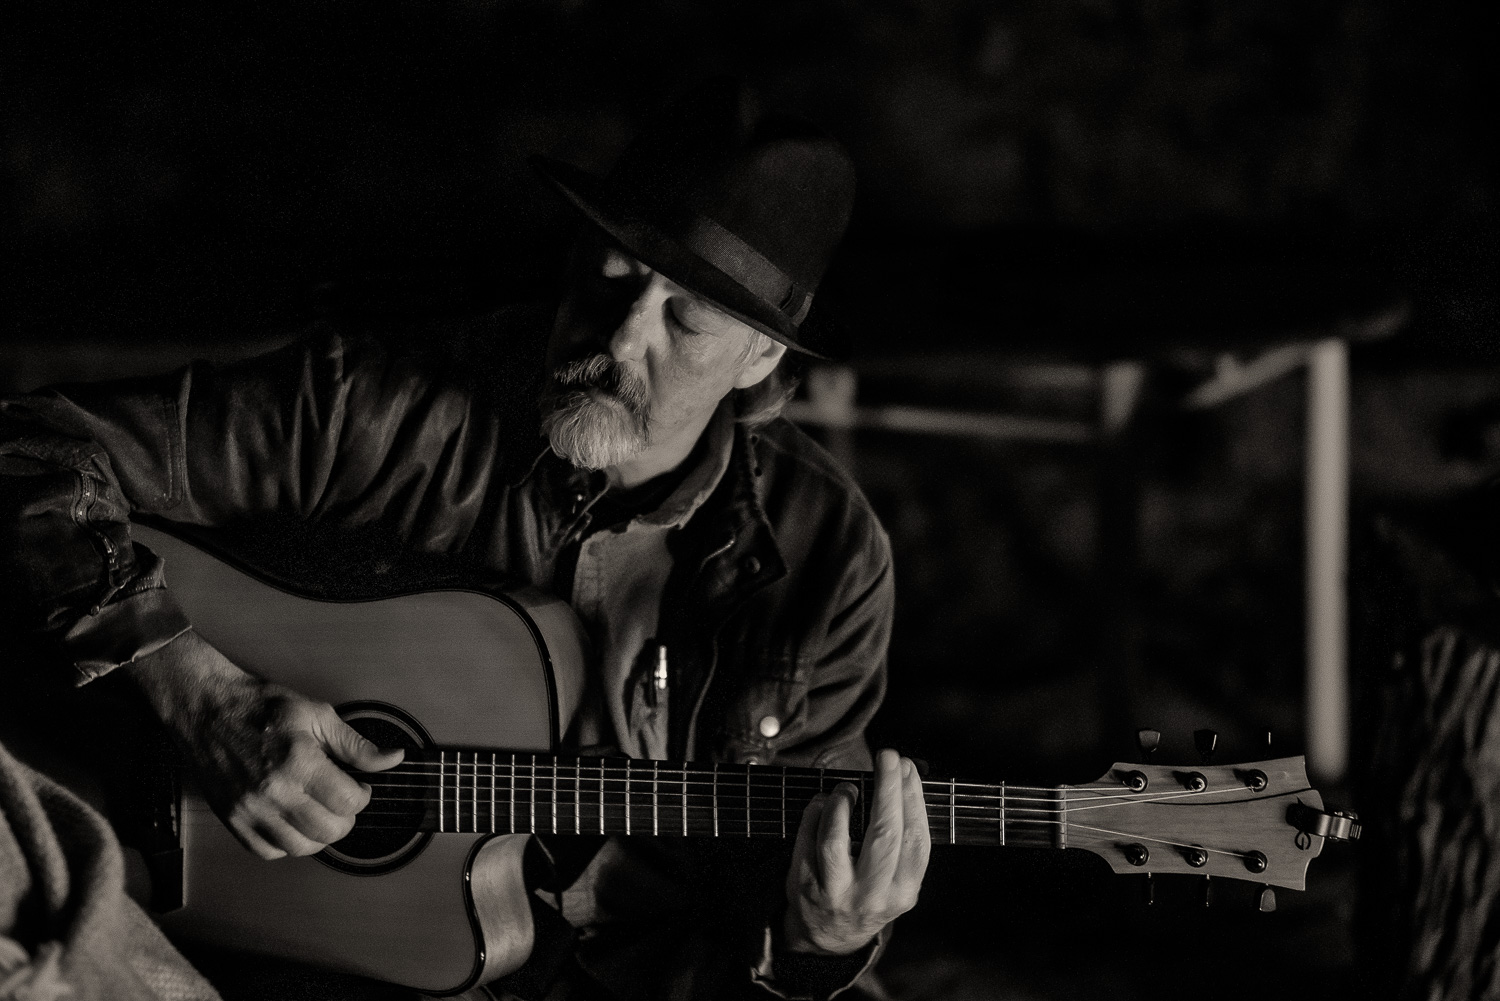 Steve Geohegan , bass player extraordinaire with the  Murder Of Crows , strikes a reflective chord playing an accoustic guitar by campfire light at  Murrayville , Australia.